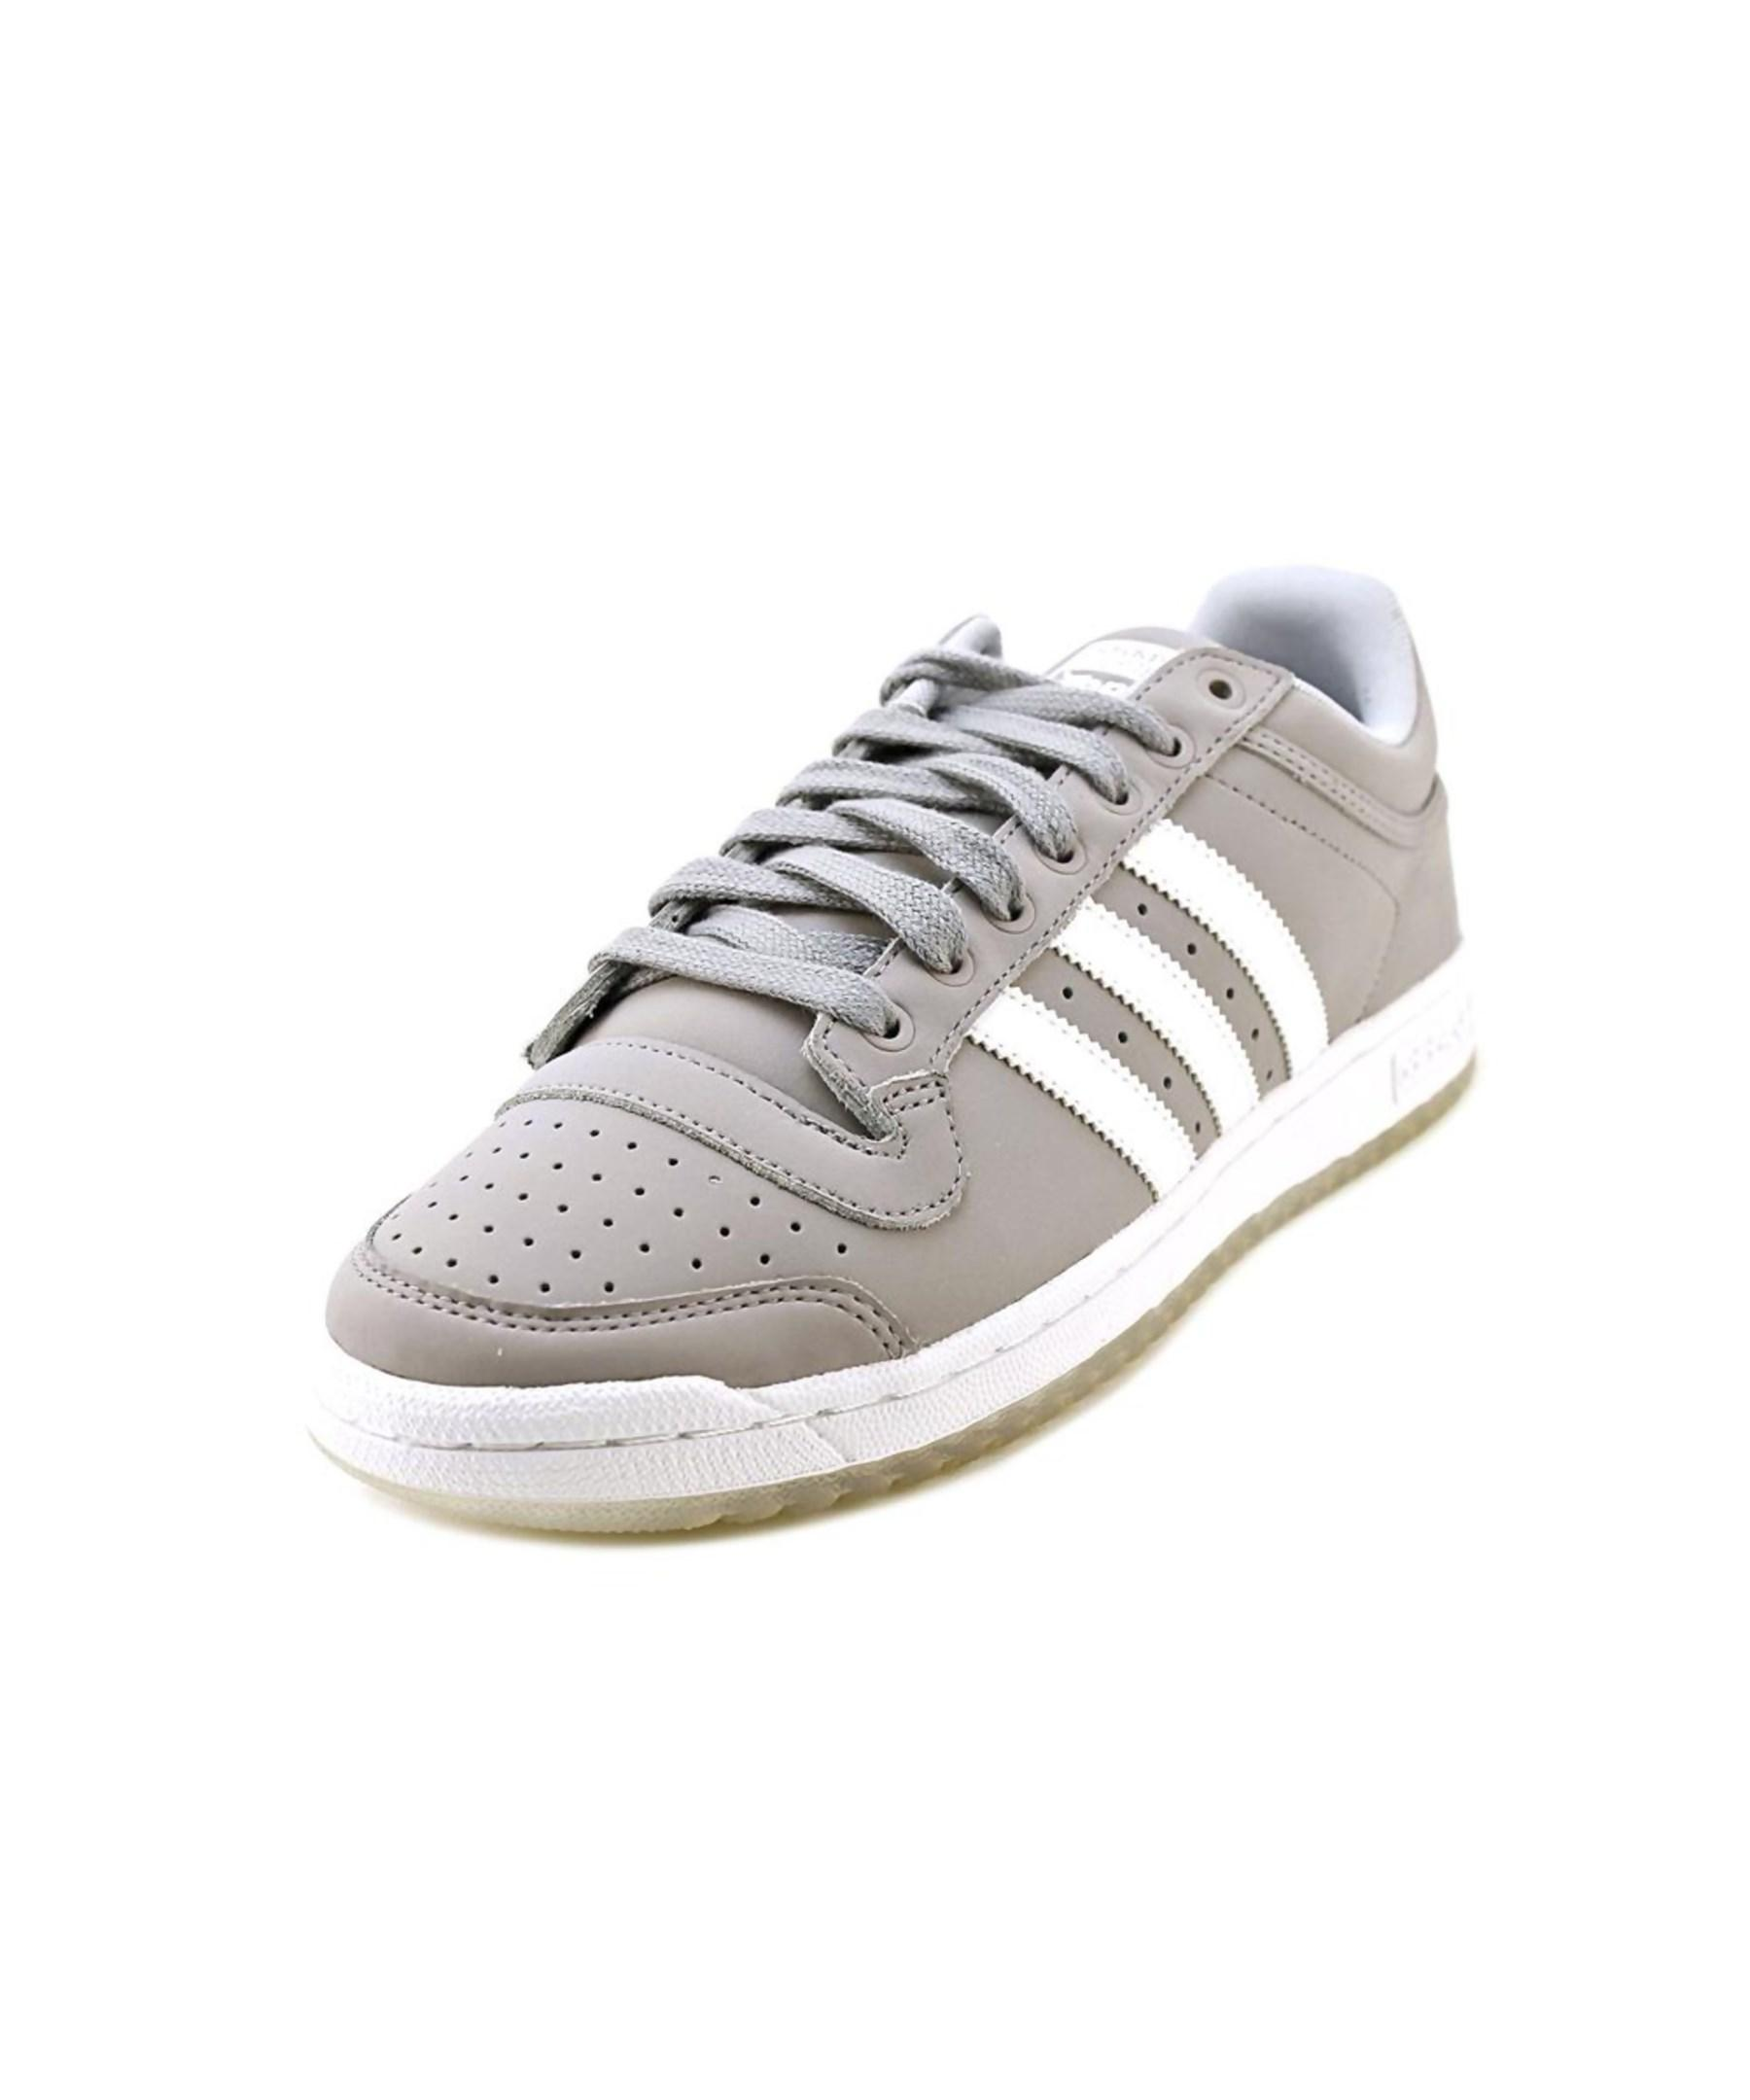 Lyst Adidas Top Ten lo J hombres Ronda Toe Leather Fashion zapatilla en